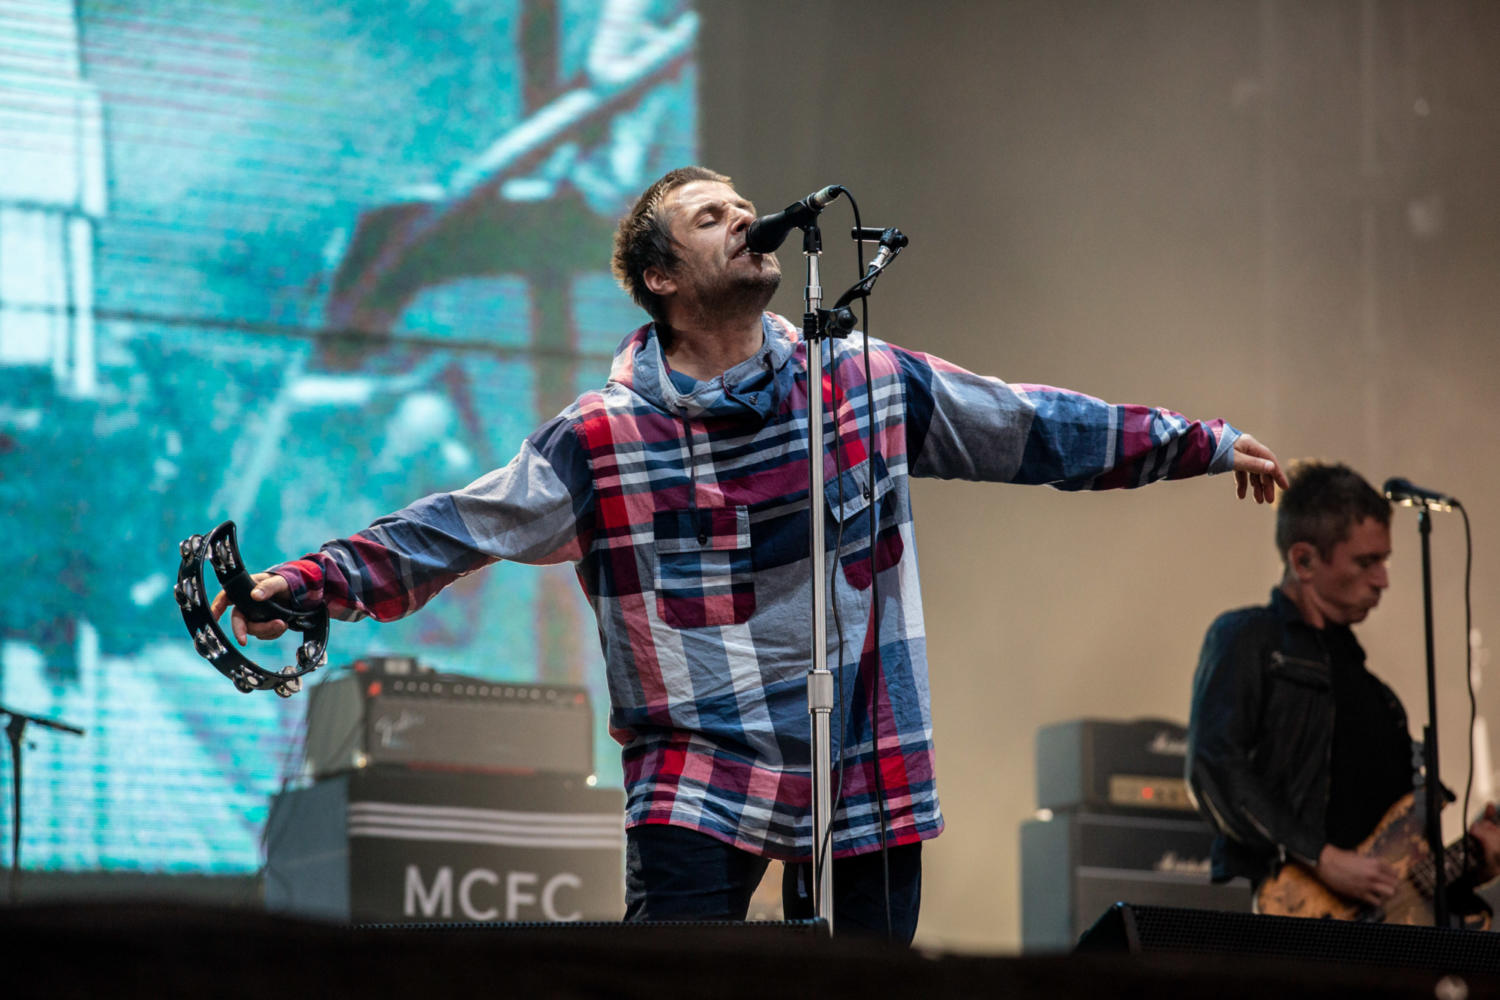 Liam Gallagher to play free show for NHS workers